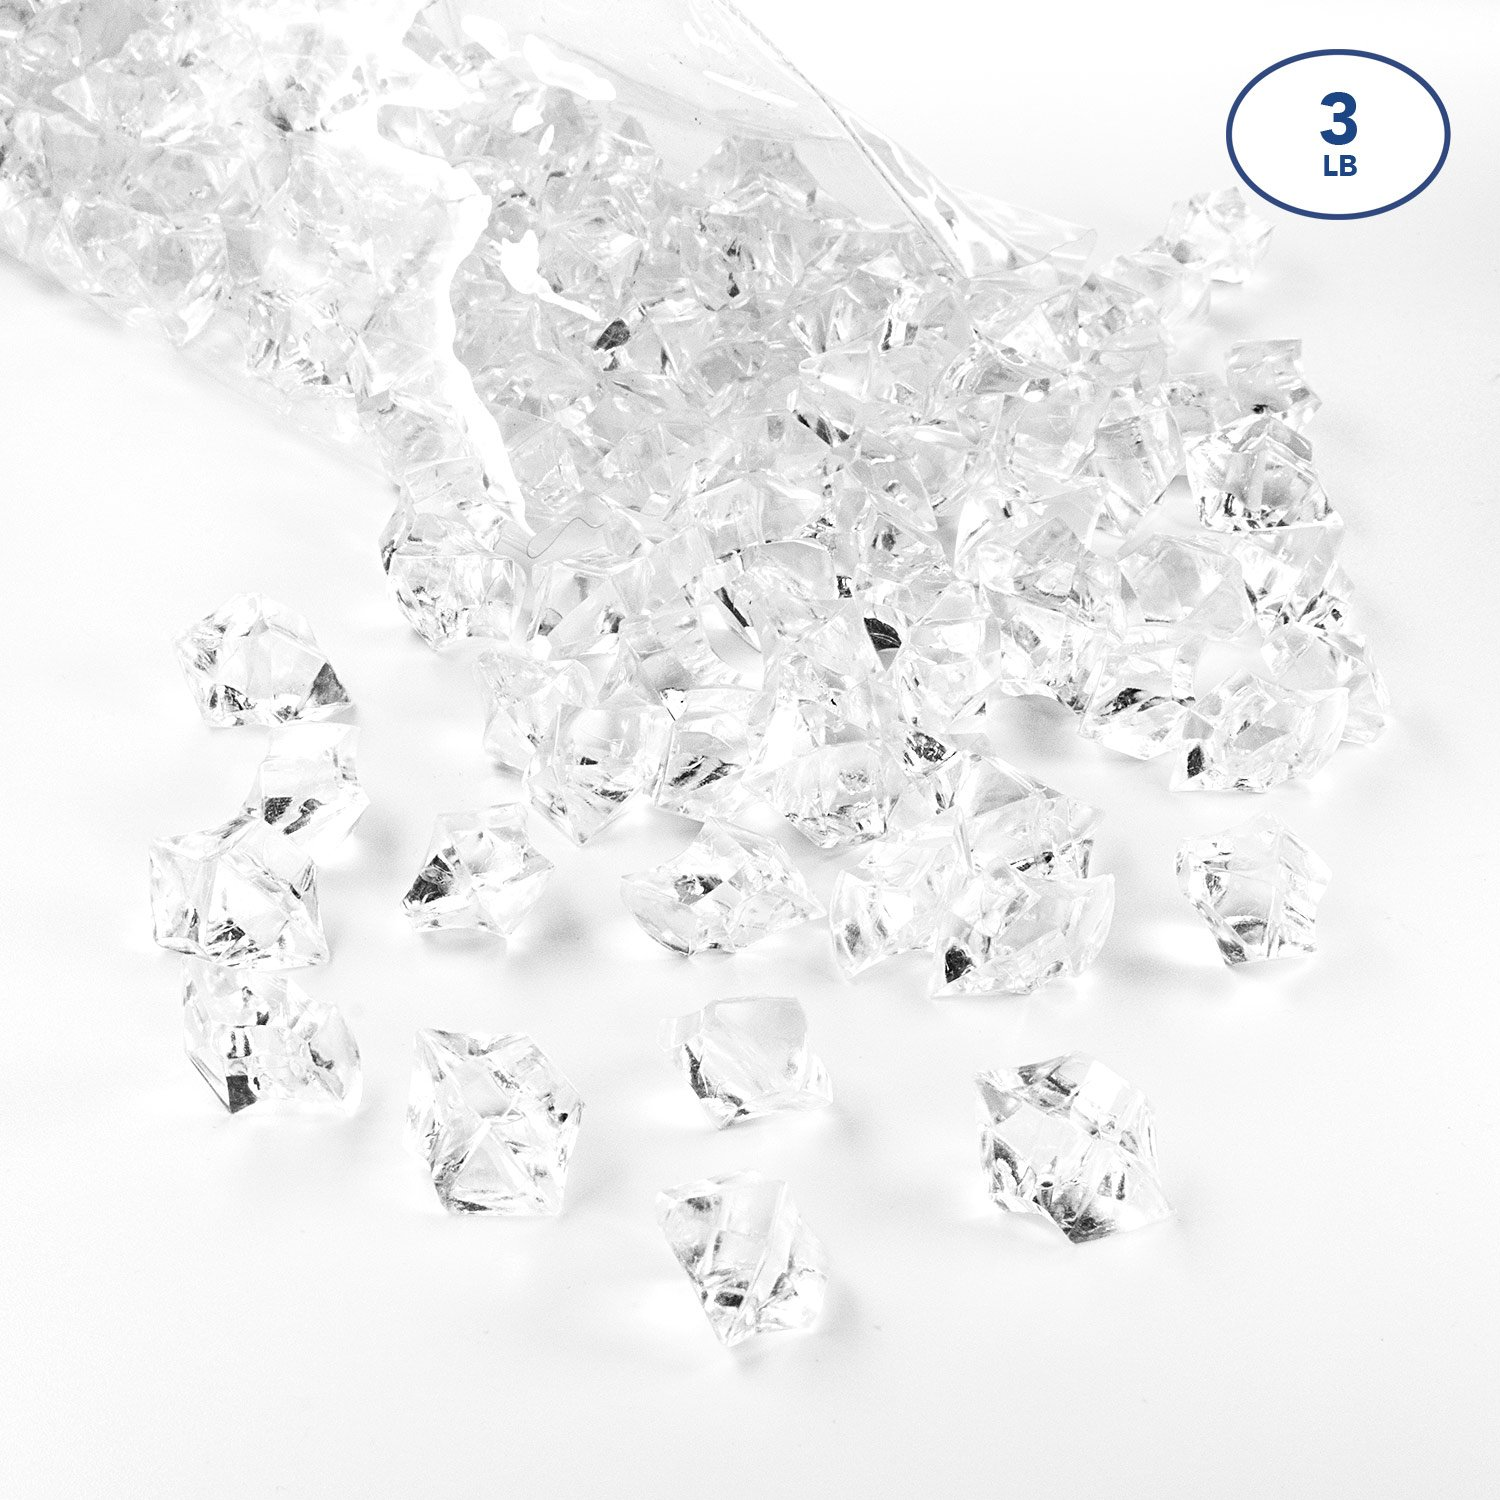 Acrylic Gems Ice Crystal Rocks for Vase Fillers, Party Table Scatter, Wedding, Photography, Party Decoration, Crafts by Royal Imports, 3 lbs (Approx 580-600 gems) - Clear